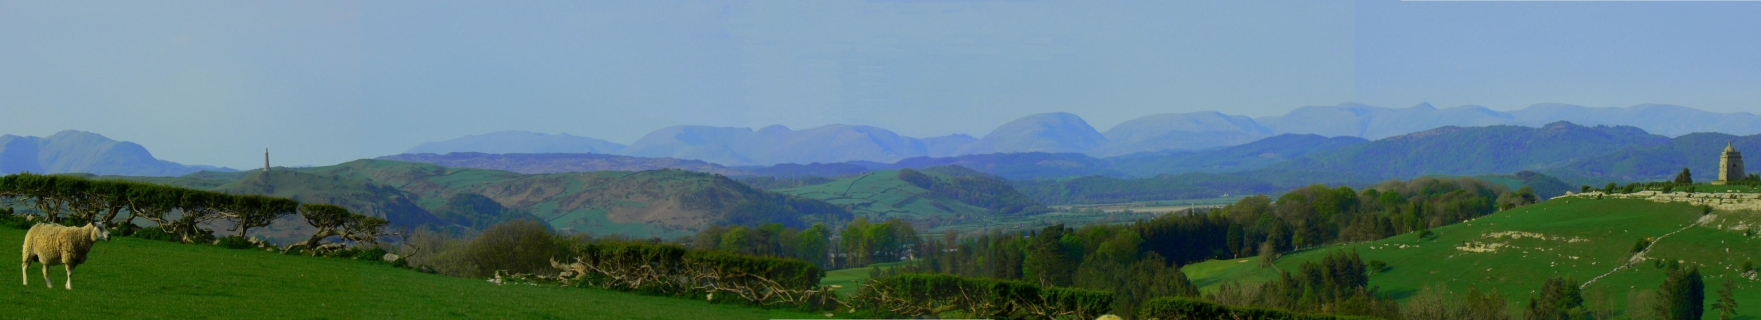 Panoramic view of the distant Lake District